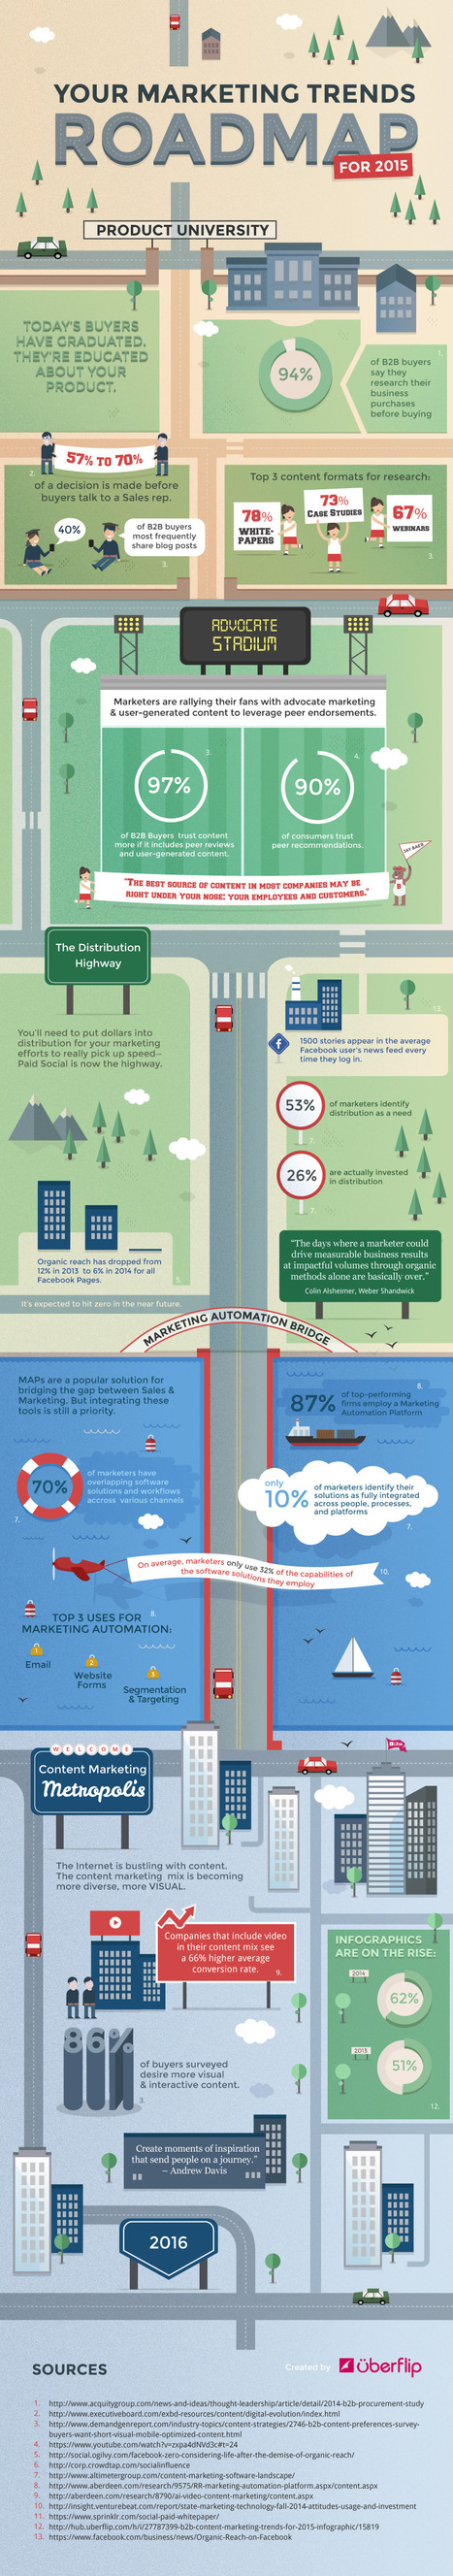 Are These 3 Points of Interest on Your Marketing Road Map? #infographic | MarketingHits | Scoop.it